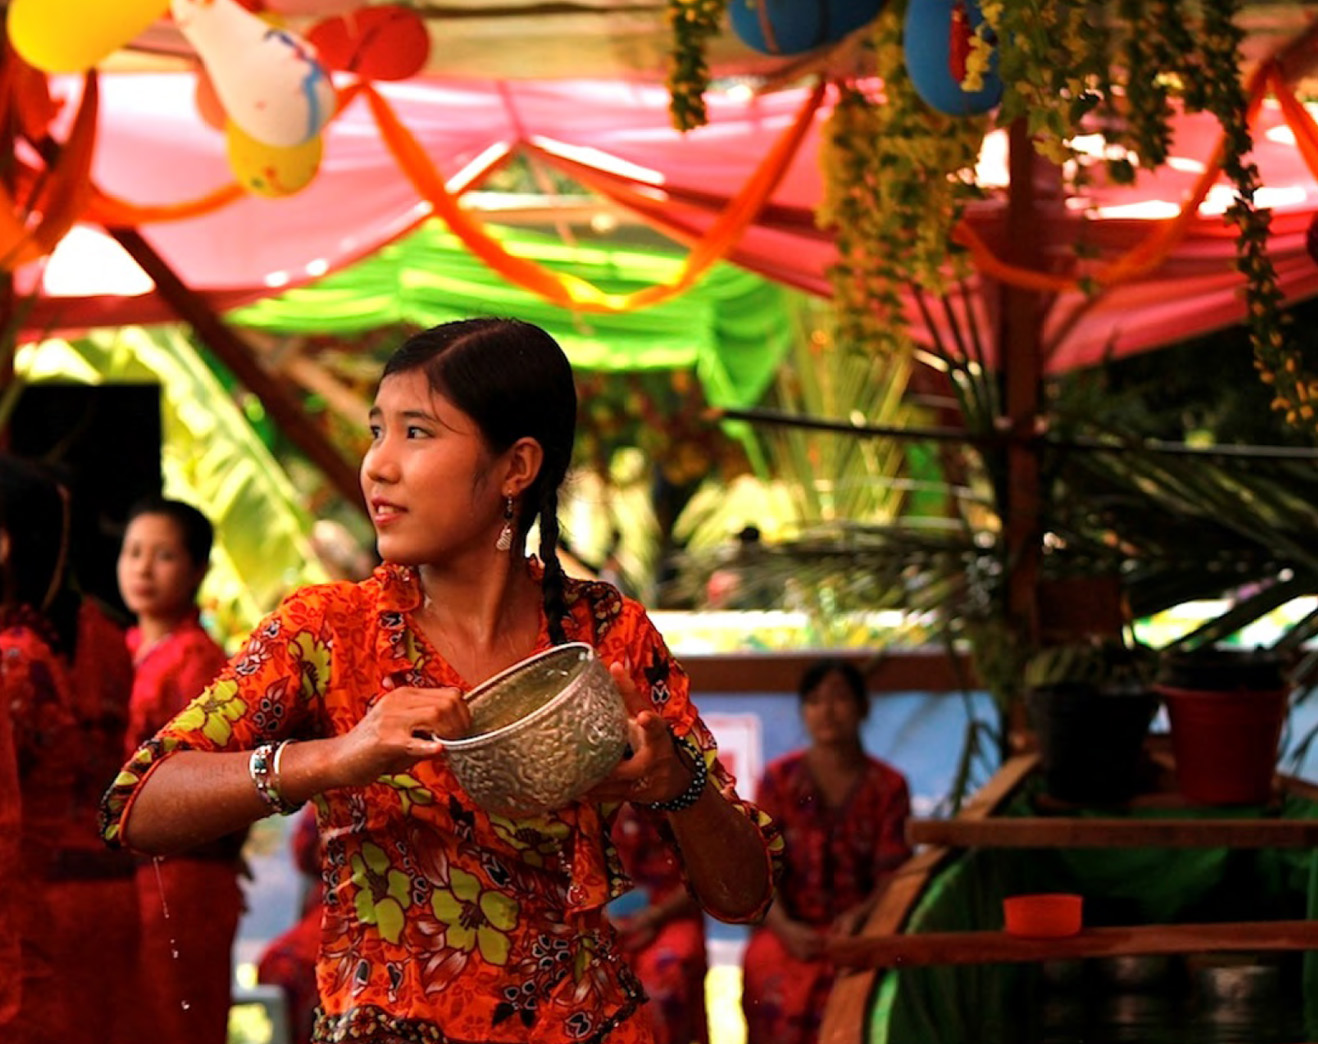 A GIRL DRESSED IN TRADITIONAL RAKHINE DRESS POURS WATER AT REVELERS DURING THINGYAN